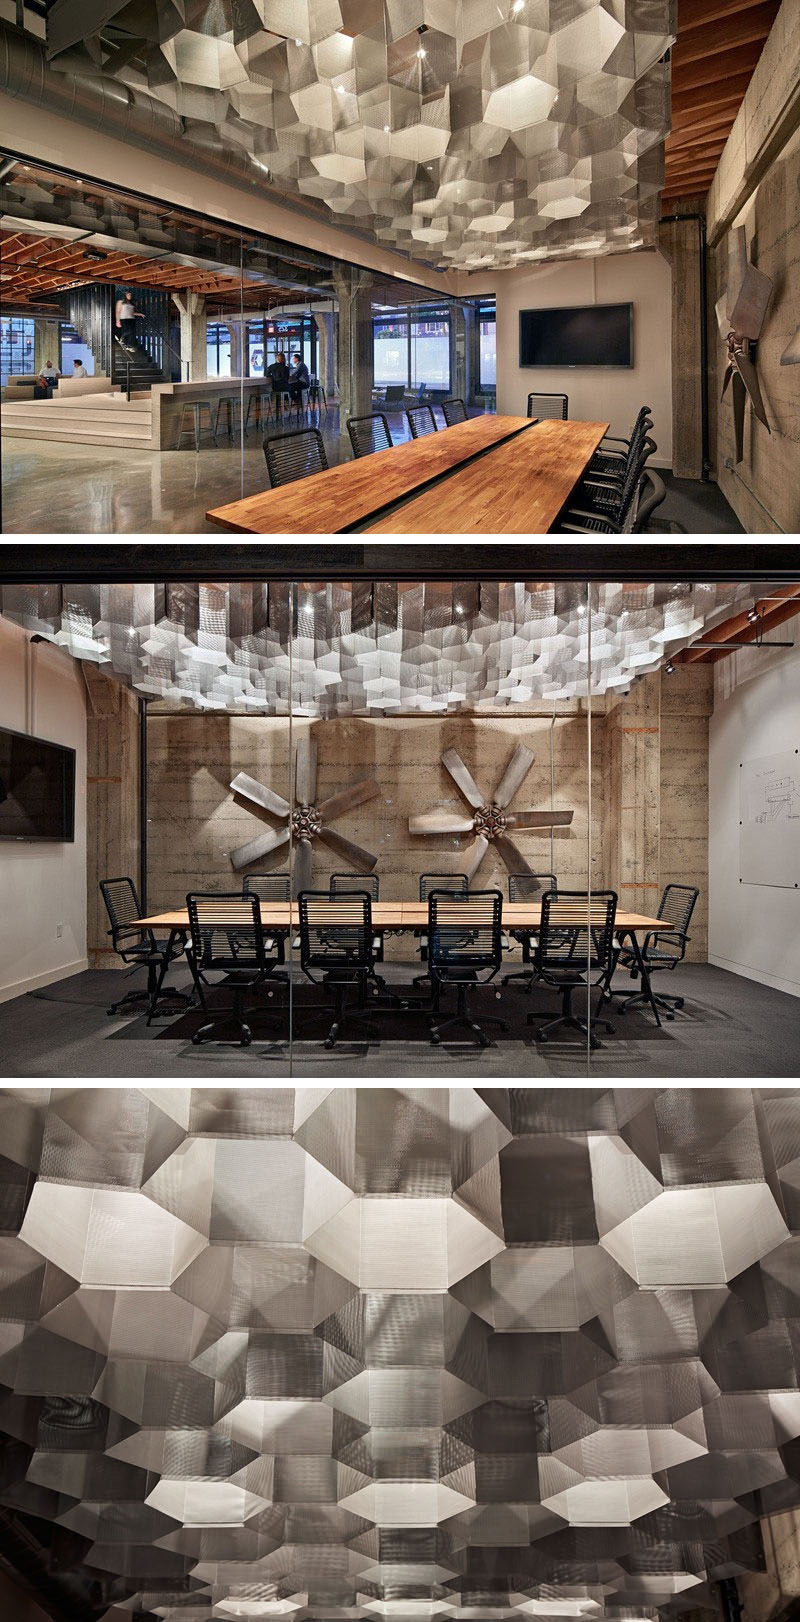 19 Ideas For Using Hexagons In Interior Design And Architecture // Metal hexagon-shaped lights have been used as an artistic feature in this meeting room. #Hexagons #Workplace #CeilingIdeas #InteriorDesign